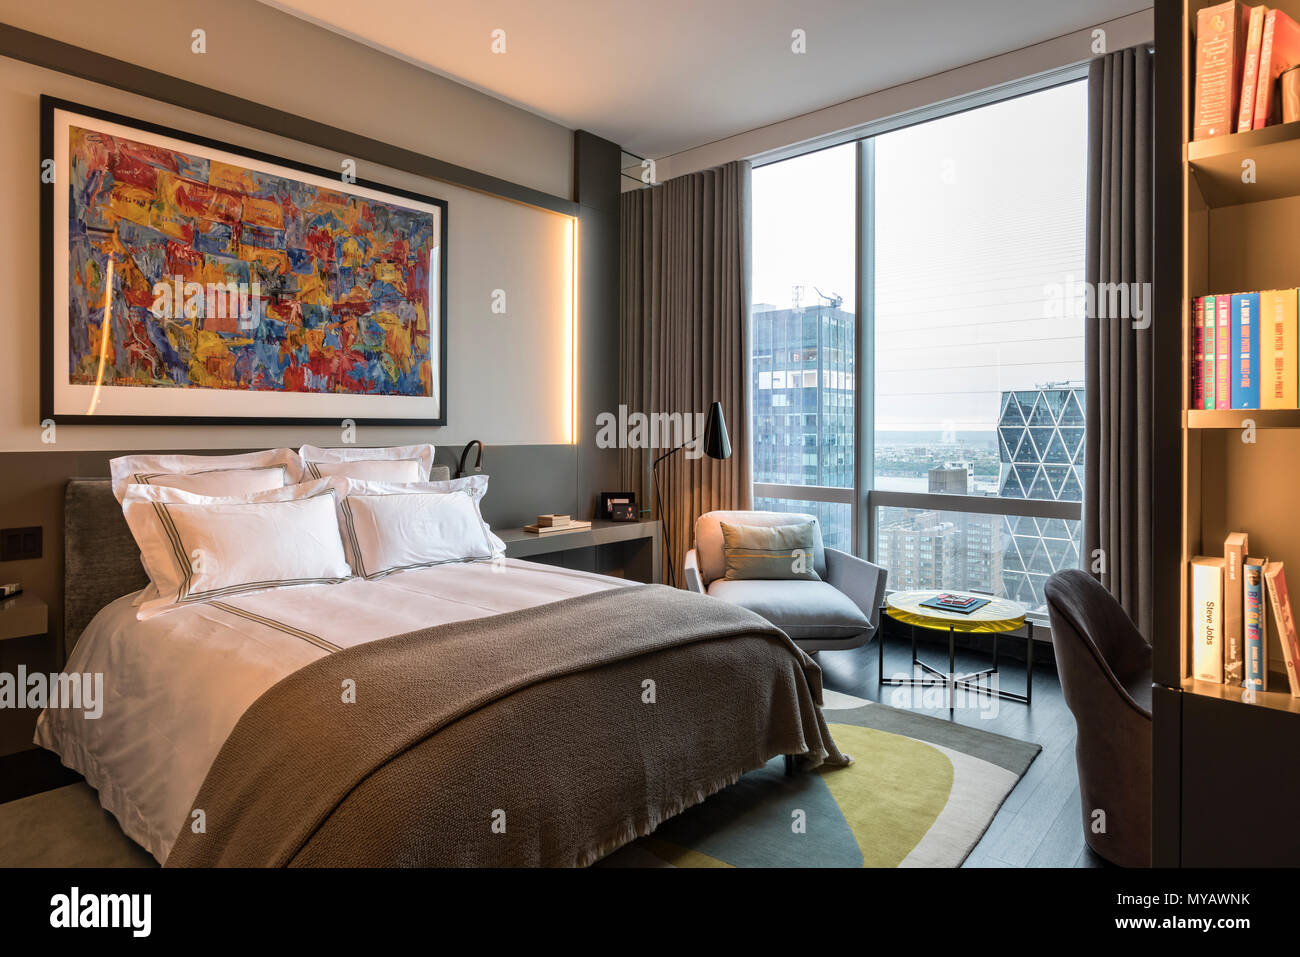 Groovy Modern Bedroom In Apartment In New York City Usa Stock Download Free Architecture Designs Rallybritishbridgeorg